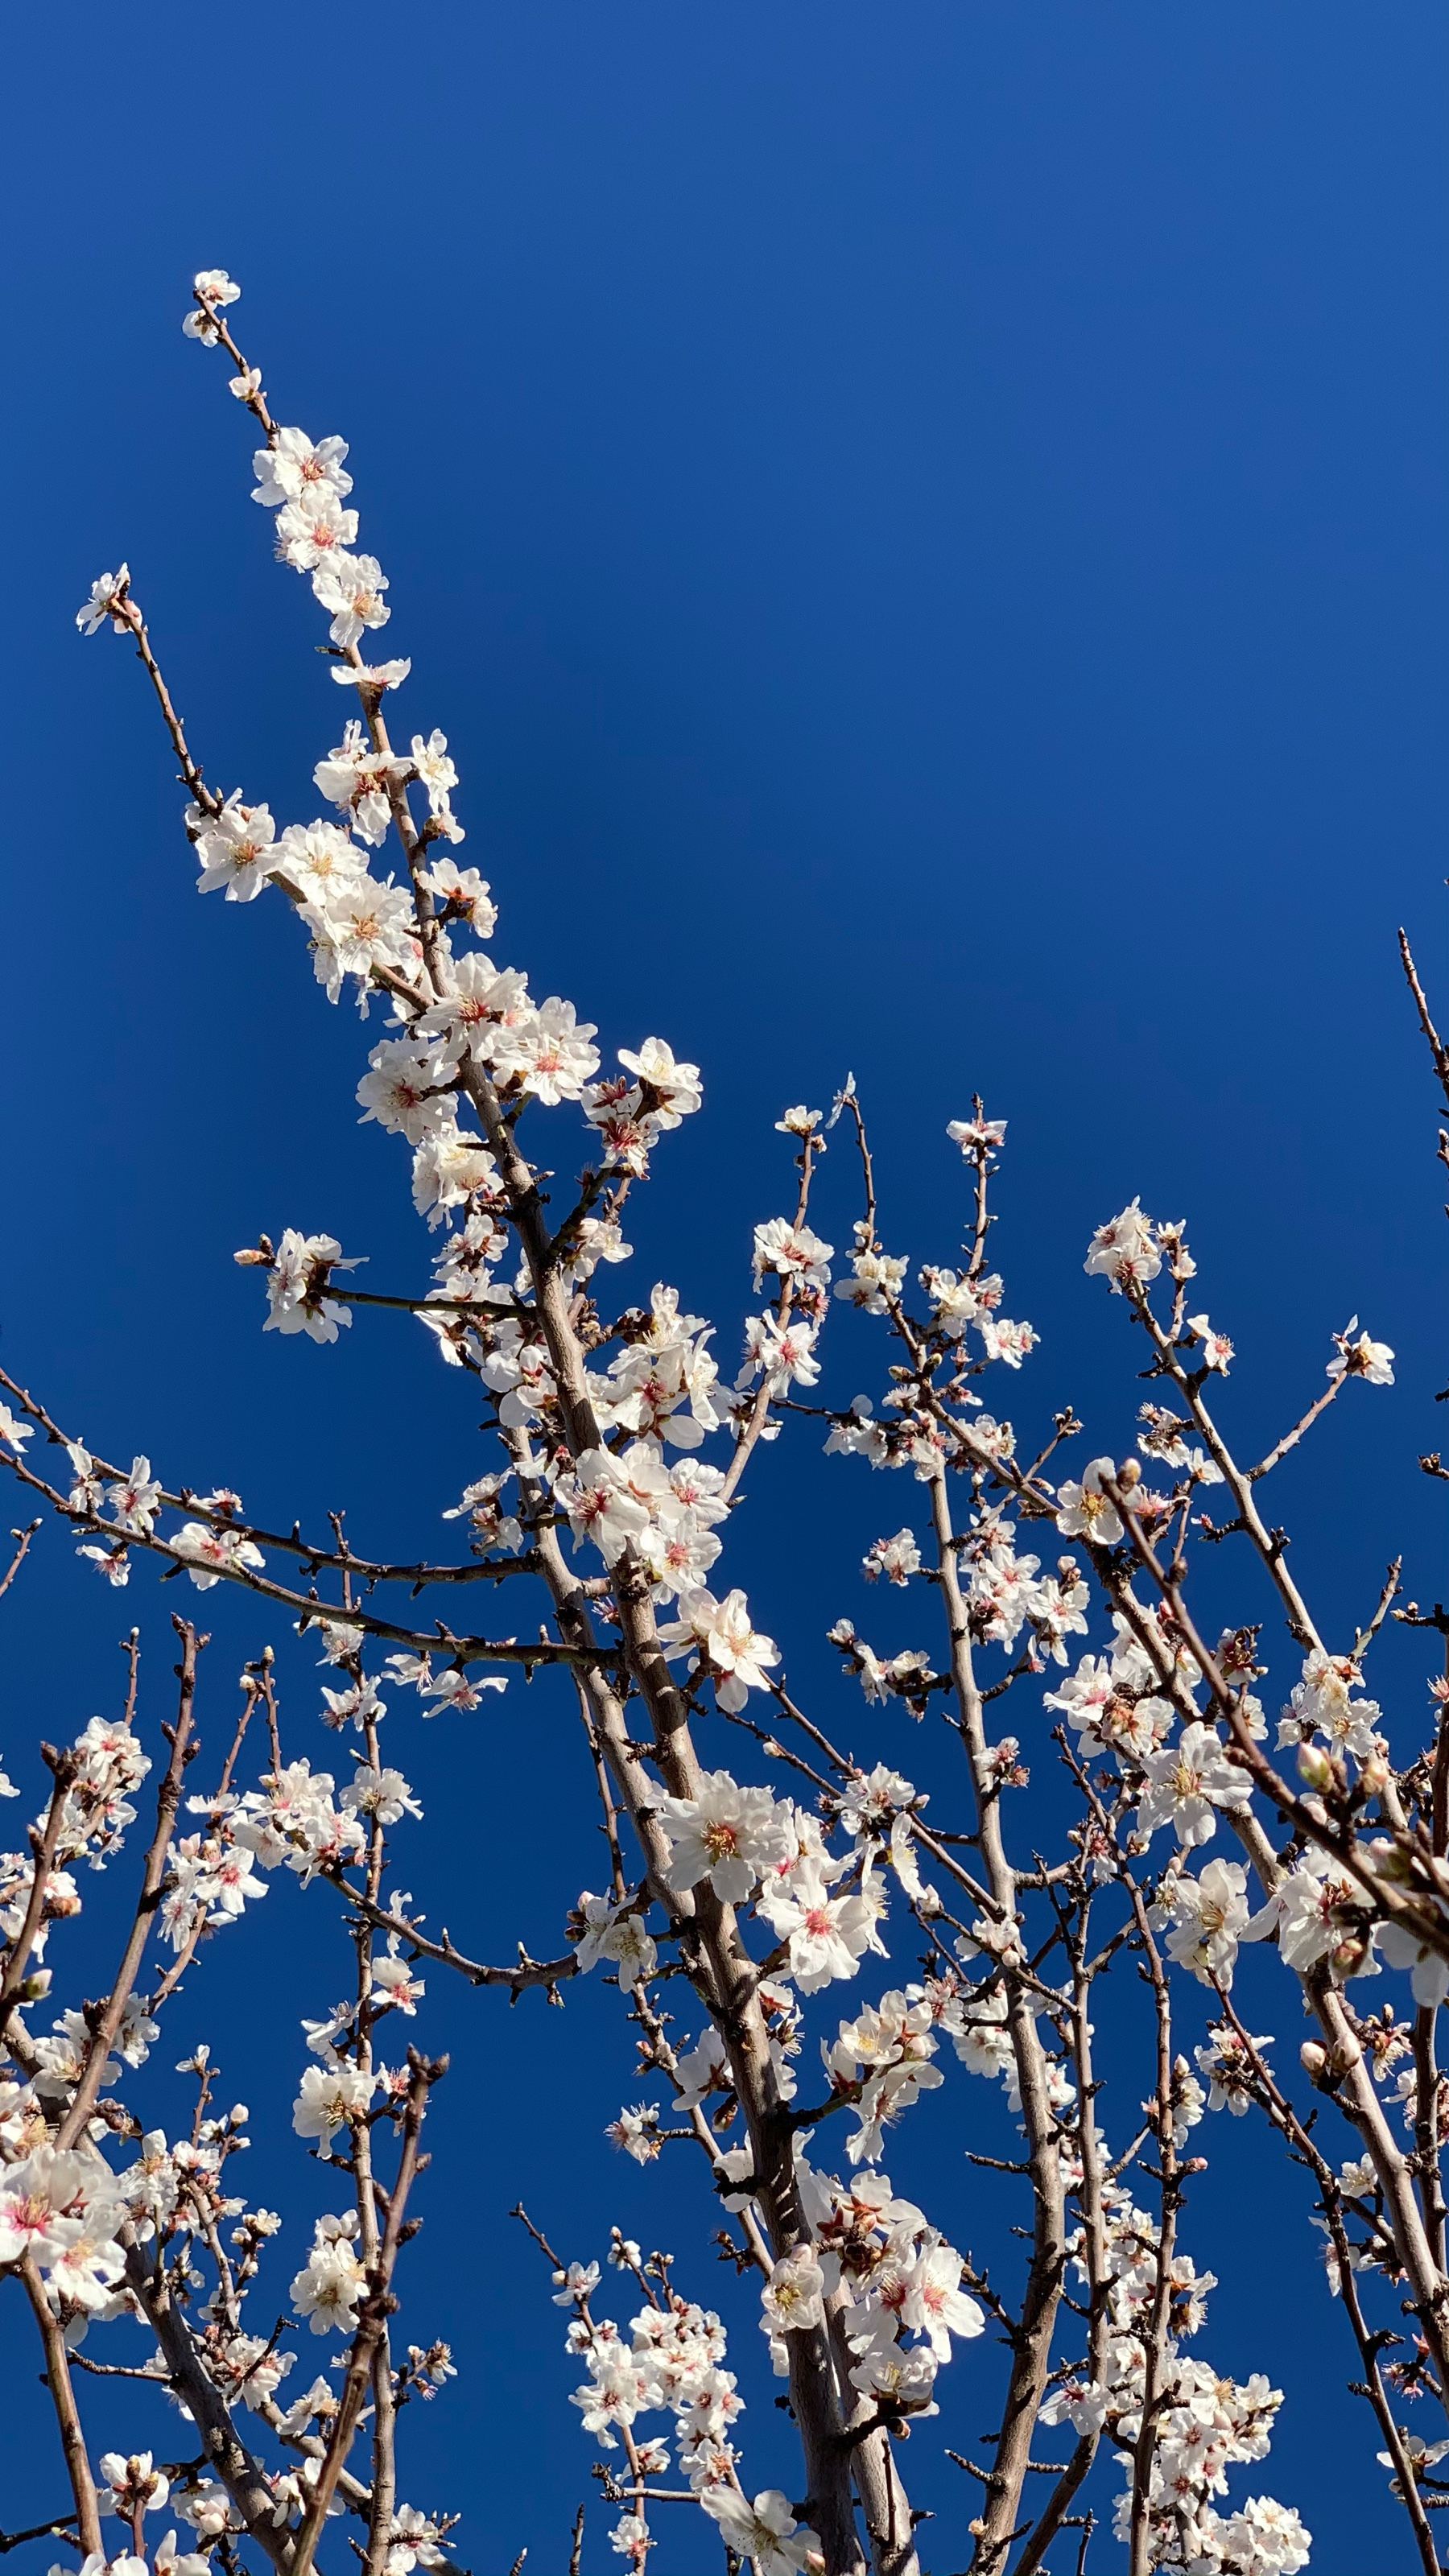 almond blossoms with a blue sky